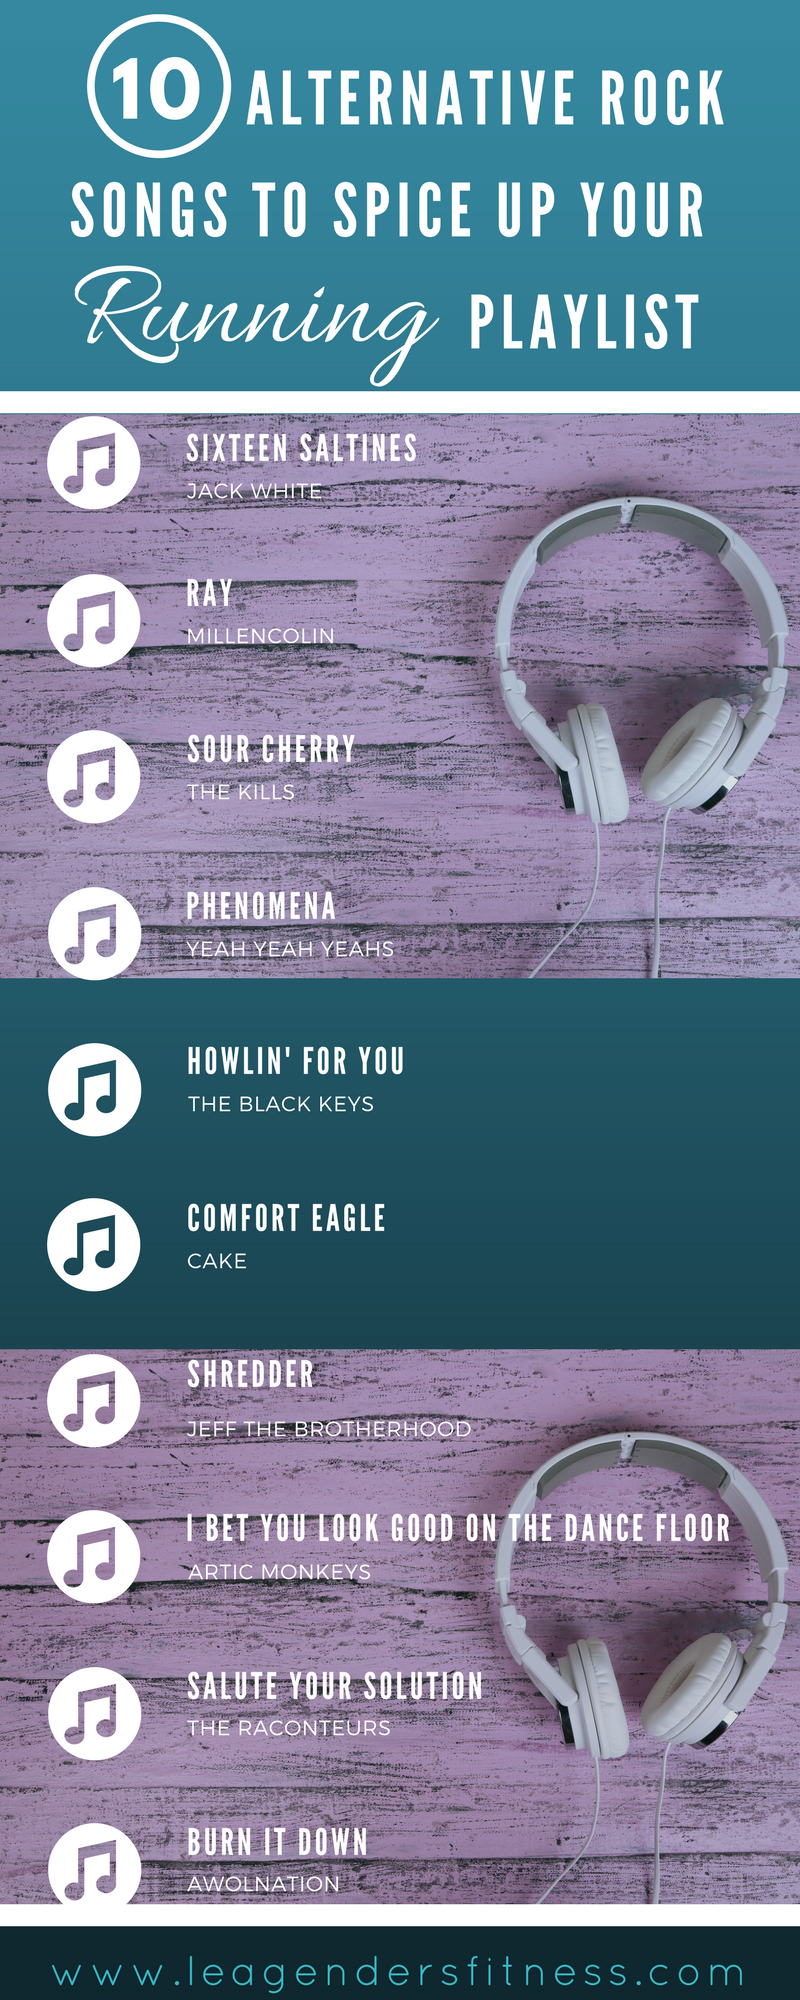 10 alternative rock songs to spice up your running playlist. Save to pinterest for later.